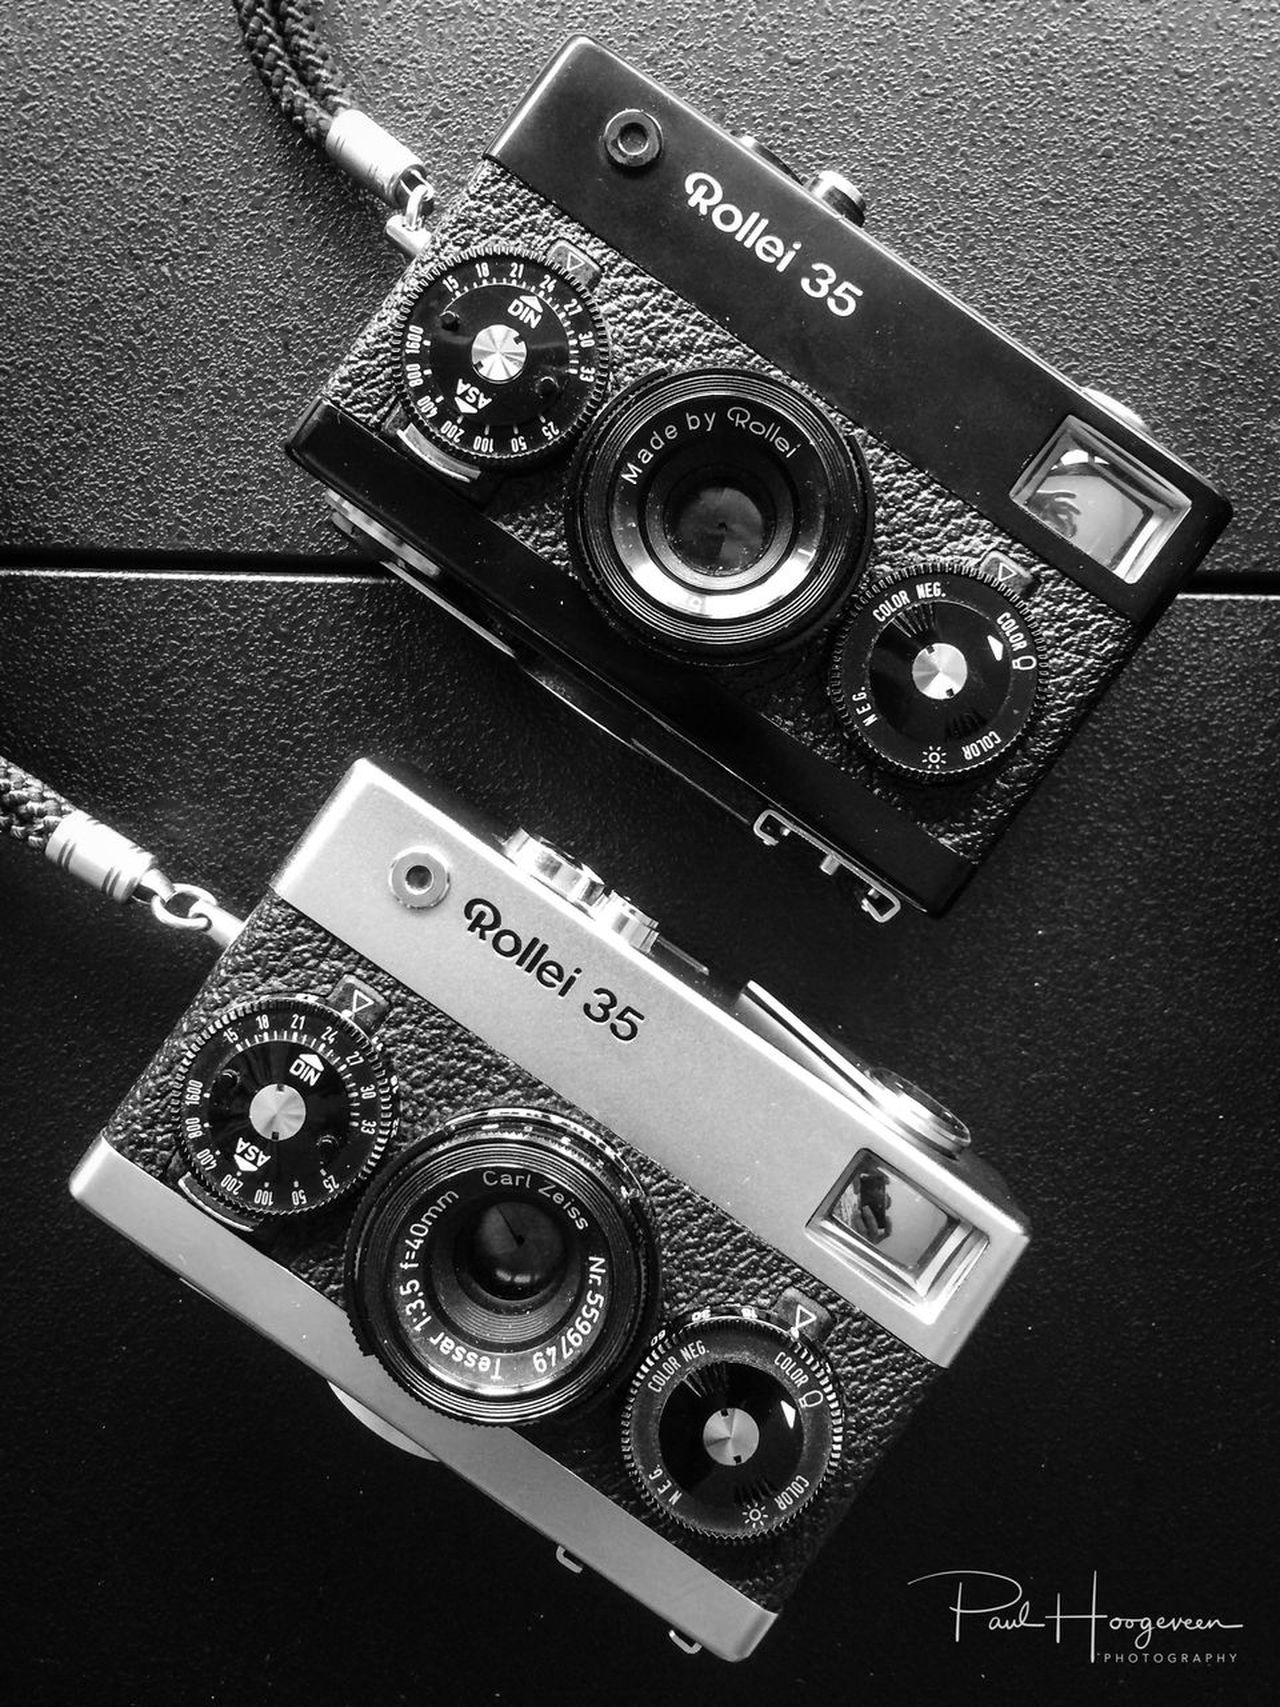 Rollei 35 & 35s Advertising Arts Culture And Entertainment B&w Blackandwhite Bw Camera Camera - Photographic Equipment Close-up Electronics Industry Gear High Angle View Indoors  Monochrome No People Old-fashioned Photography Themes Product Photography Retro Styled Rollei Rollei35 Rollei35s Single Object Still Life Technology Vintage